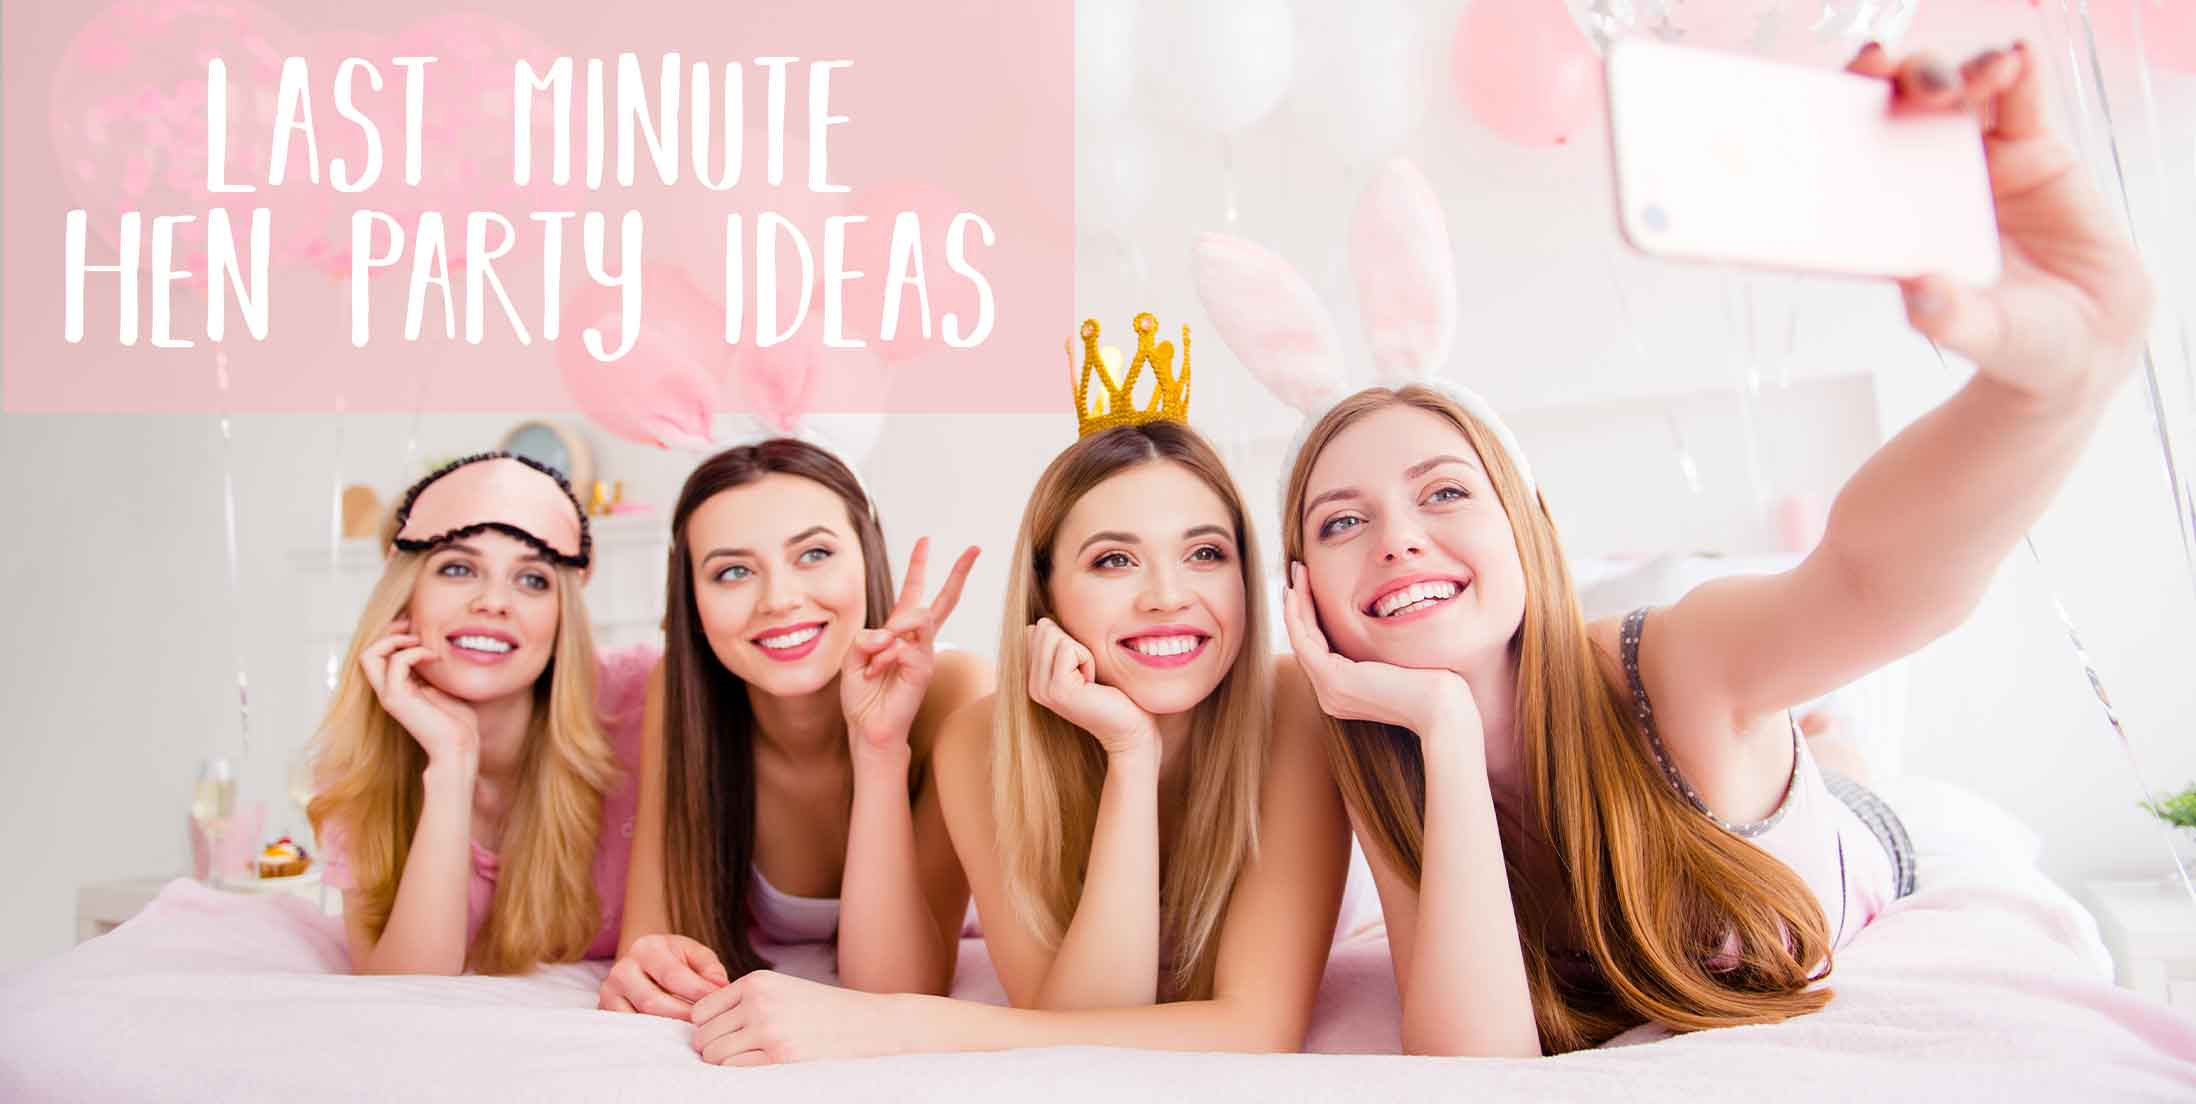 Last Minute Hen Party Ideas